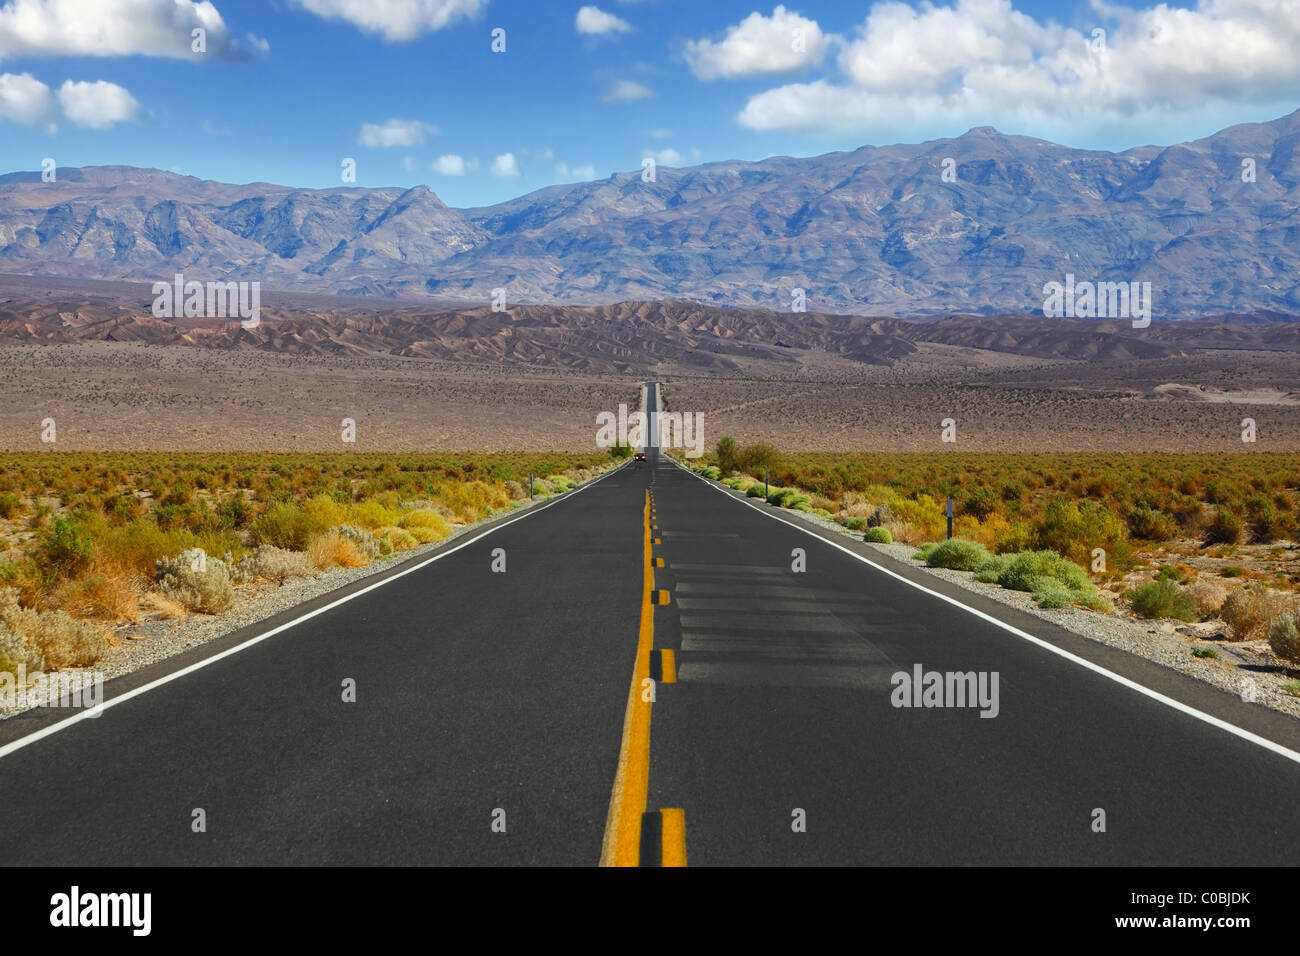 The lonely red car on the road, crossing enormous Death the Valley in California. - Stock Image